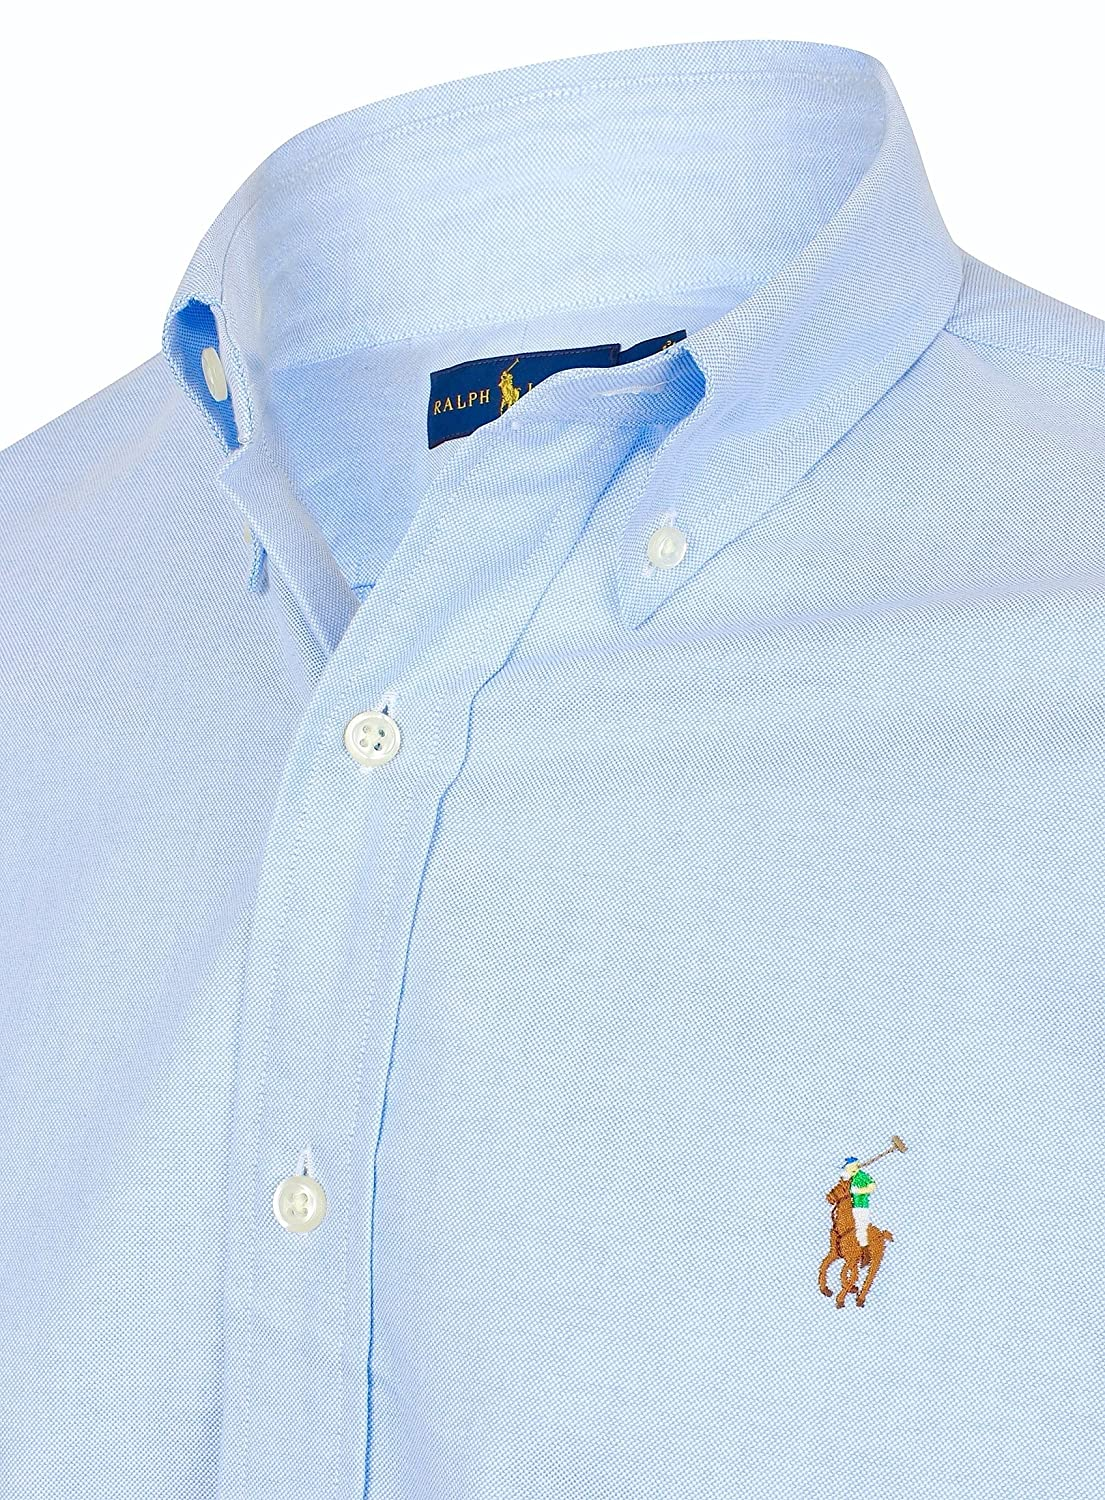 9116f24aa3 Ralph Lauren Polo by Uomo Button Down Oxford Camicia Standard Fit